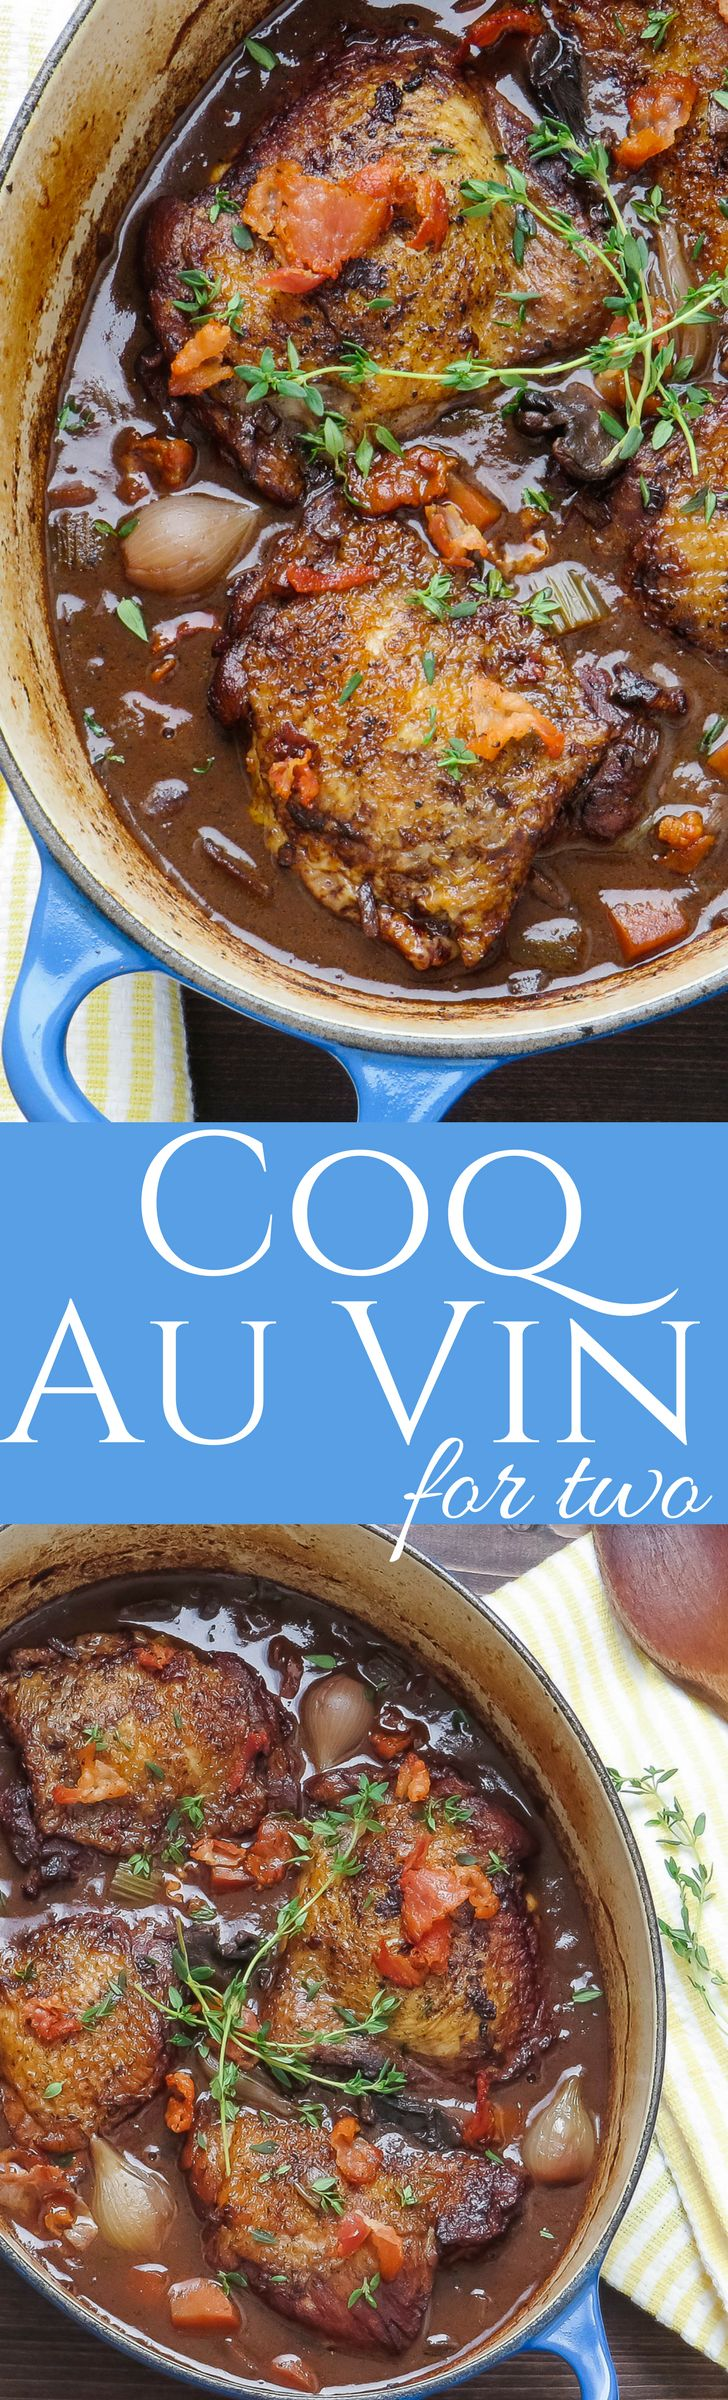 This slow braised recipe for Coq Au Vin is made with chicken thighs and plenty of red wine. A perfect romantic dinner for two!